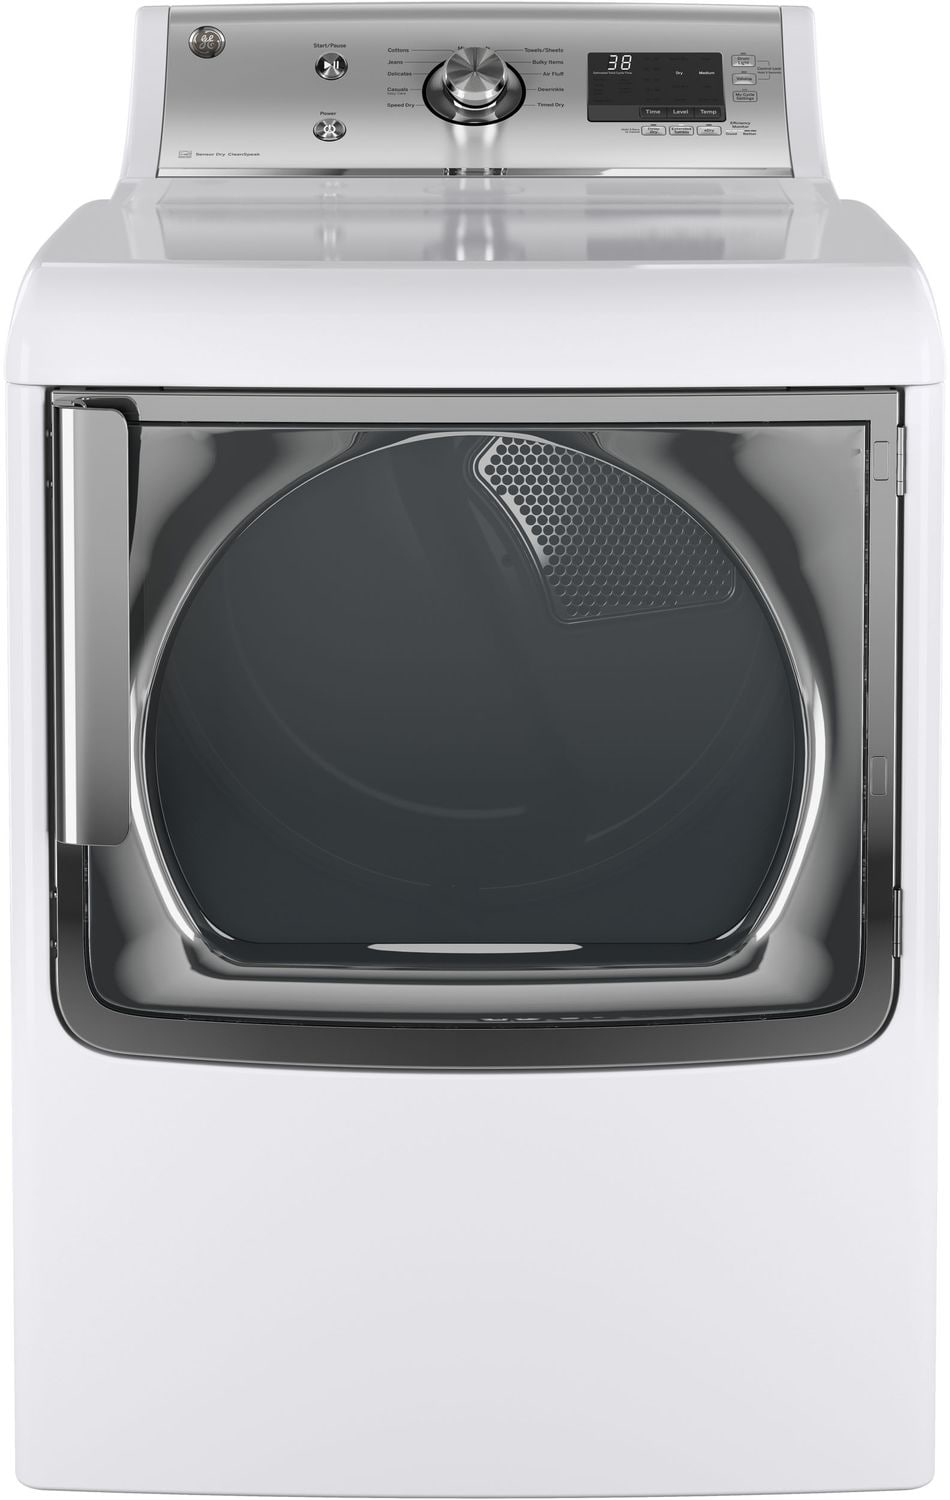 Washers and Dryers - GE 7.8 Cu. Ft. High-Efficiency Gas Dryer – GTD81GSMJWS